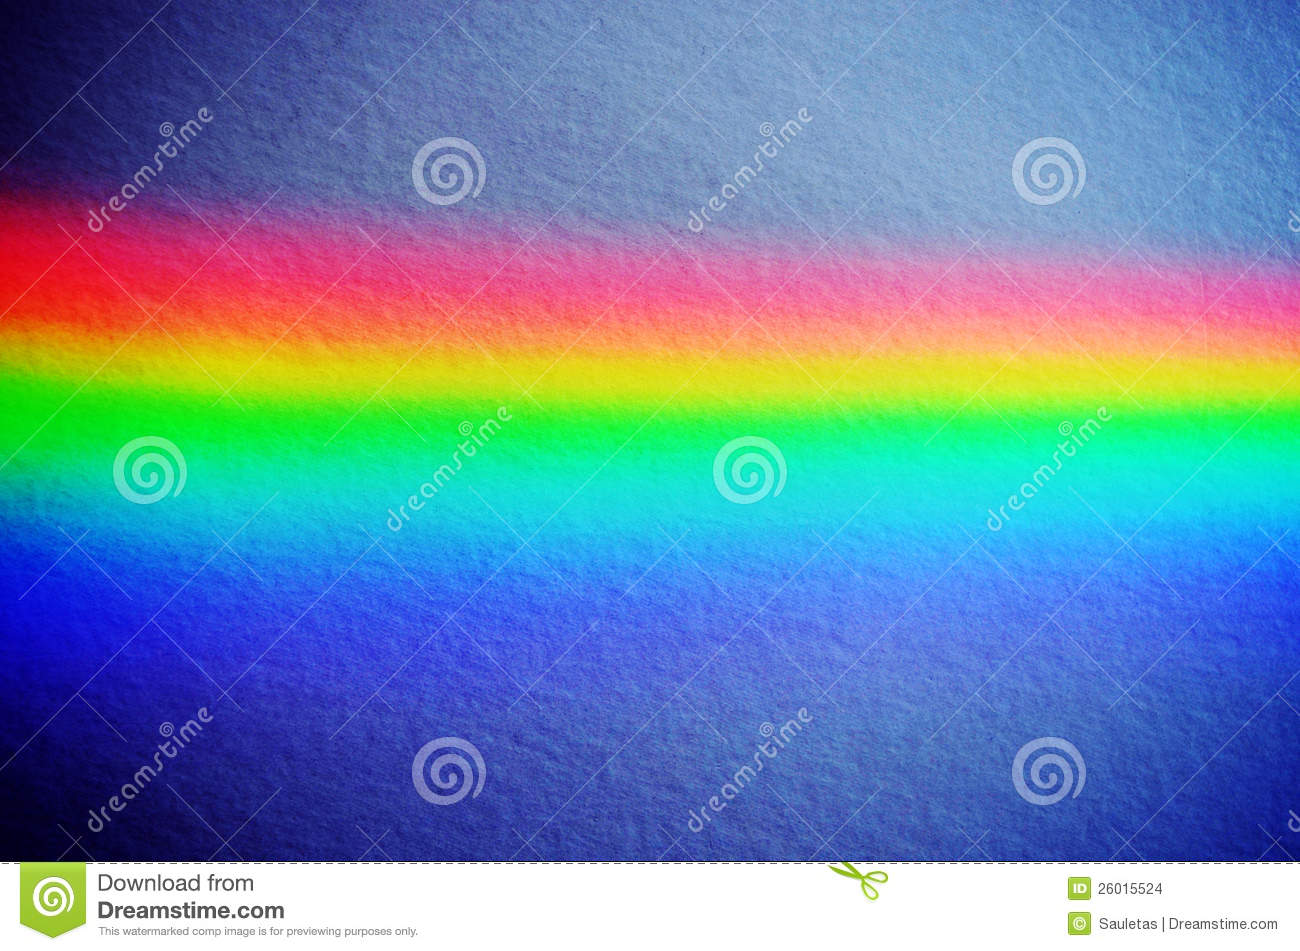 Rainbow Notes On Light Background Stock: Rainbow Light On Concrete Yellow Wall Background Stock